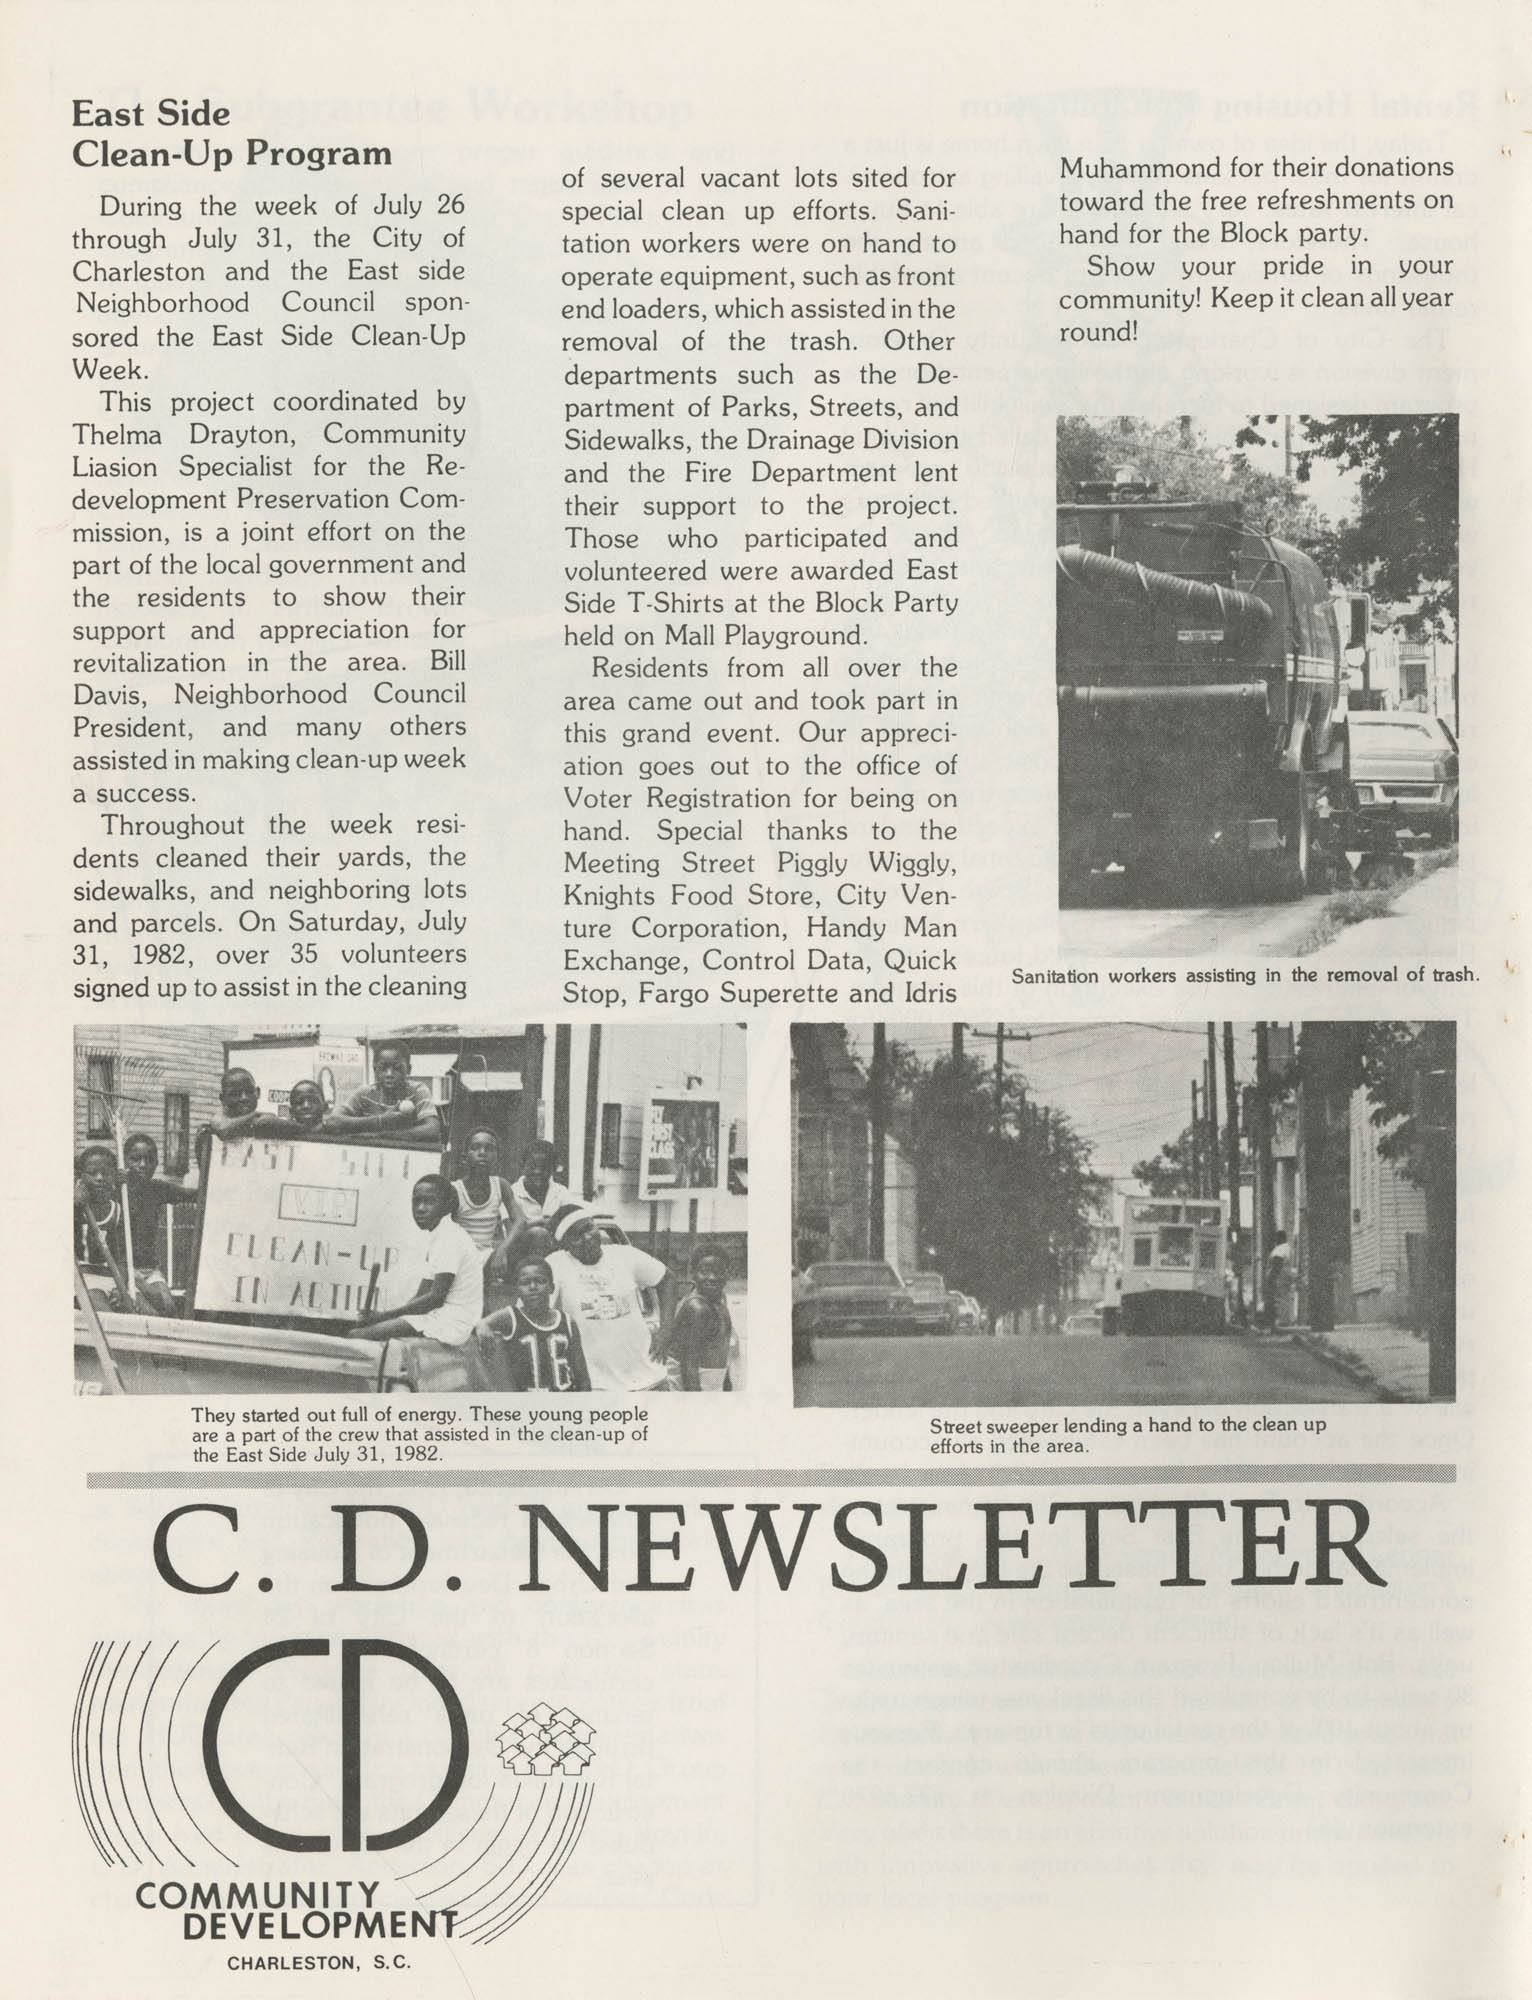 C. D. Newsletter, A City of Charleston Community Development Publication, Summer Issue - 1982, Page 8